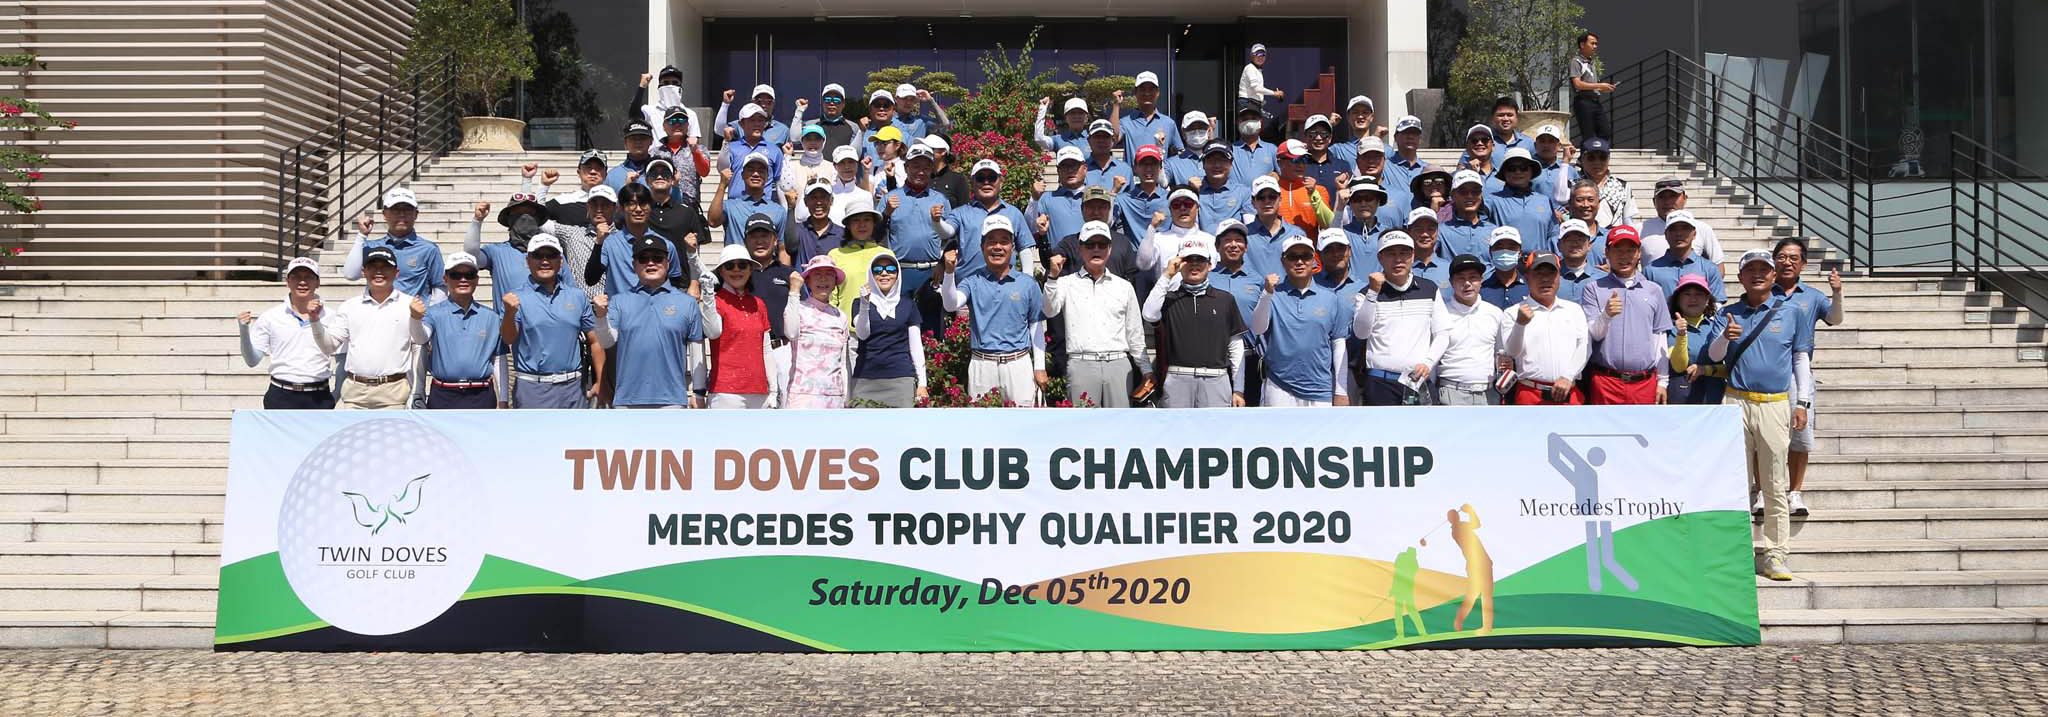 CLUB CHAMPIONSHIP on 5th Dec 2020